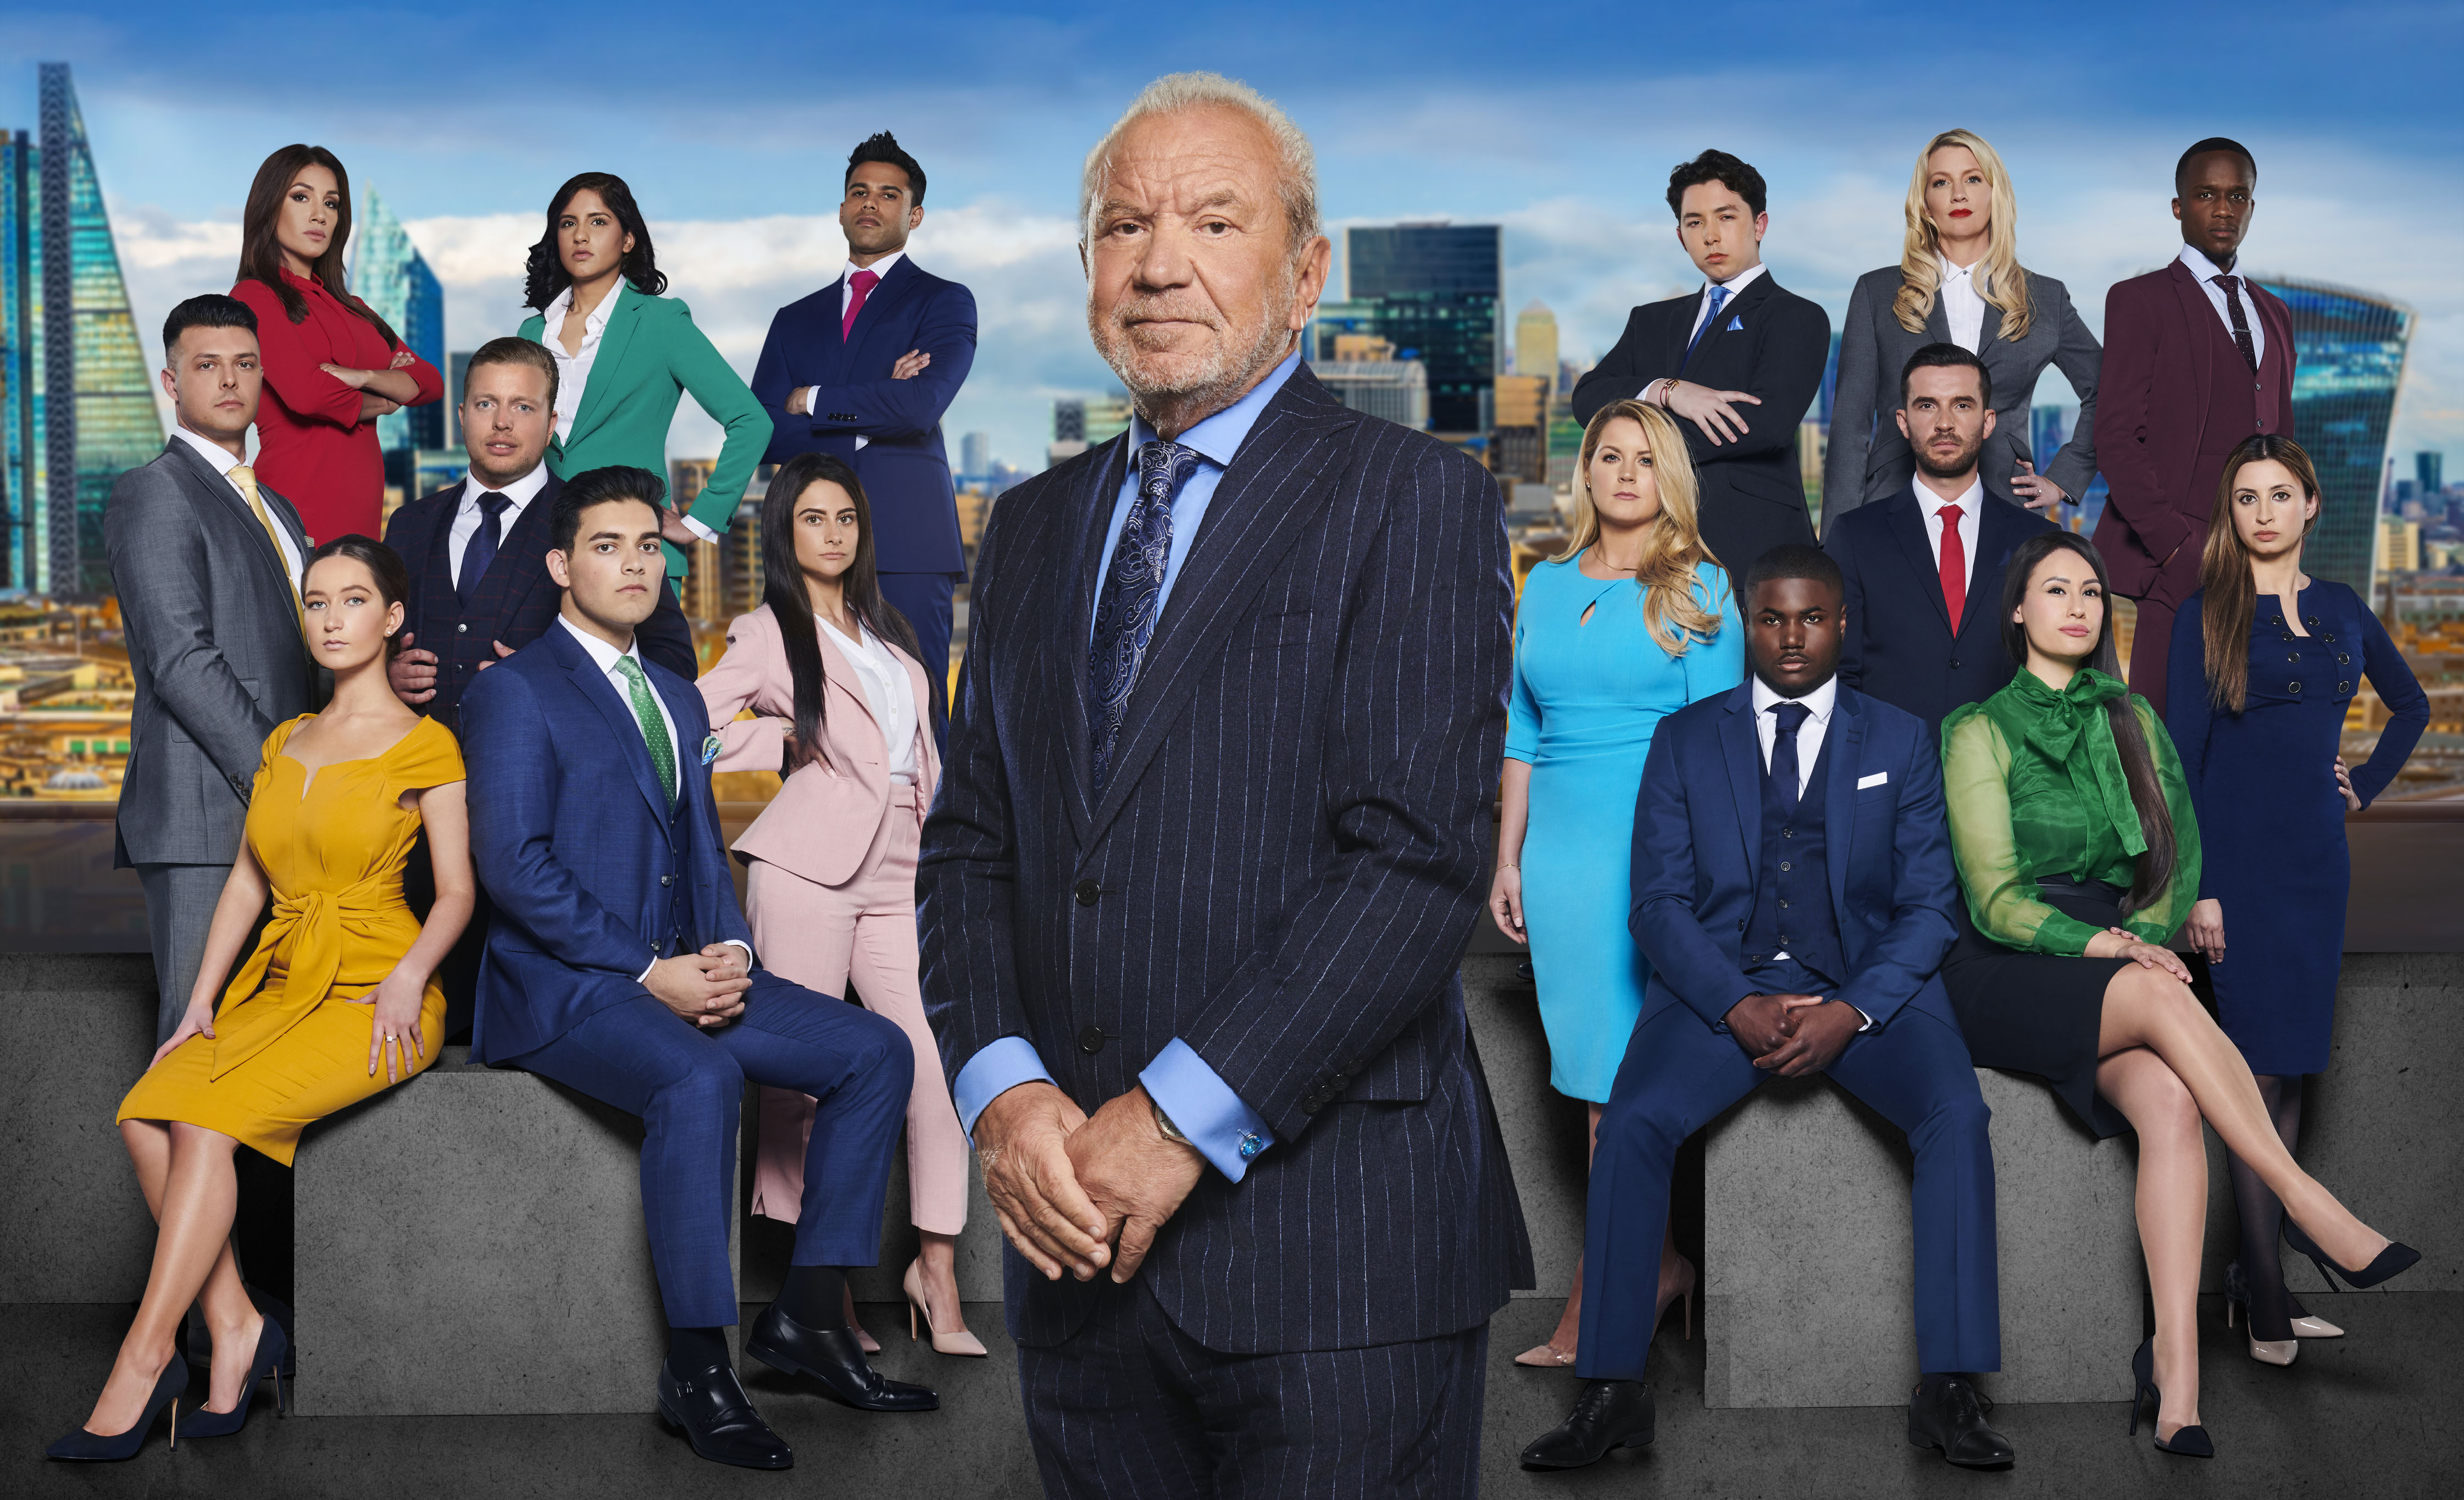 BBC bosses 'fuming after Apprentice contestant brags about getting to the final'